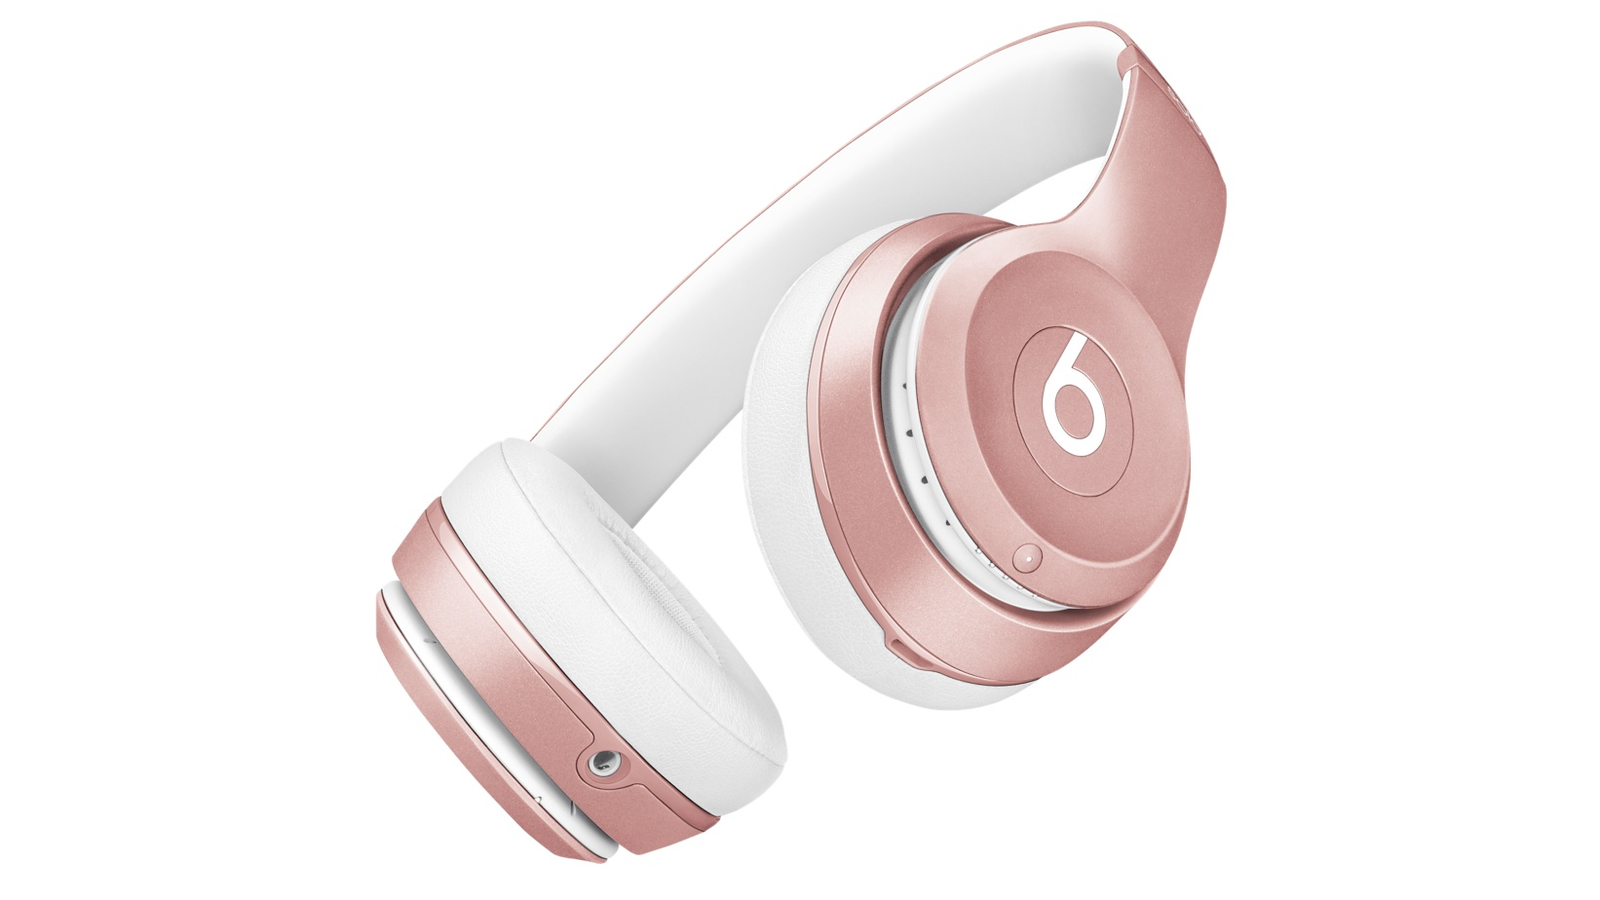 lighting earbuds iphone x - Rose Gold Beats To Match Your Rose Gold Phone To Match Your Rose Gold Watch